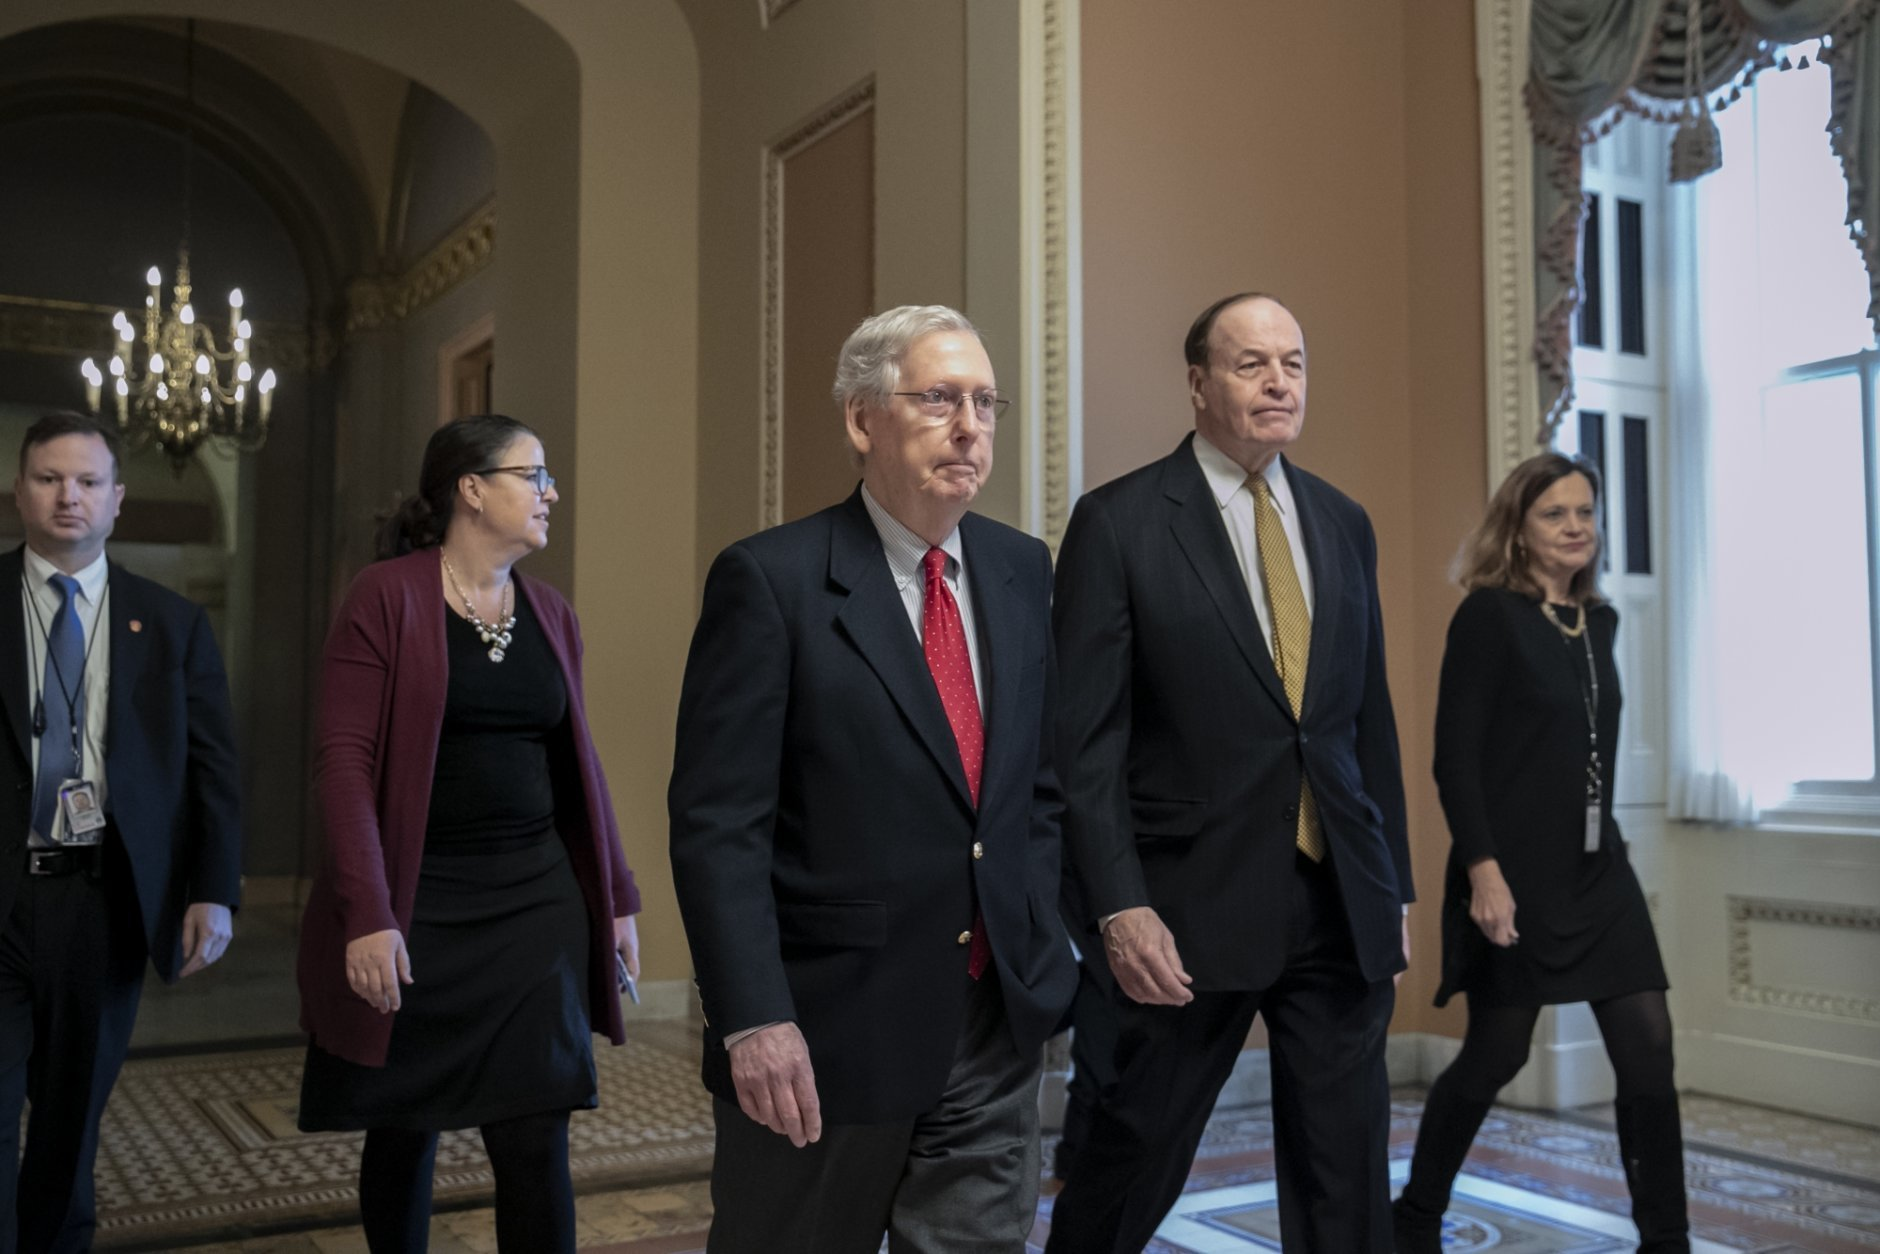 Mitch McConnell, Richard C. Shelby